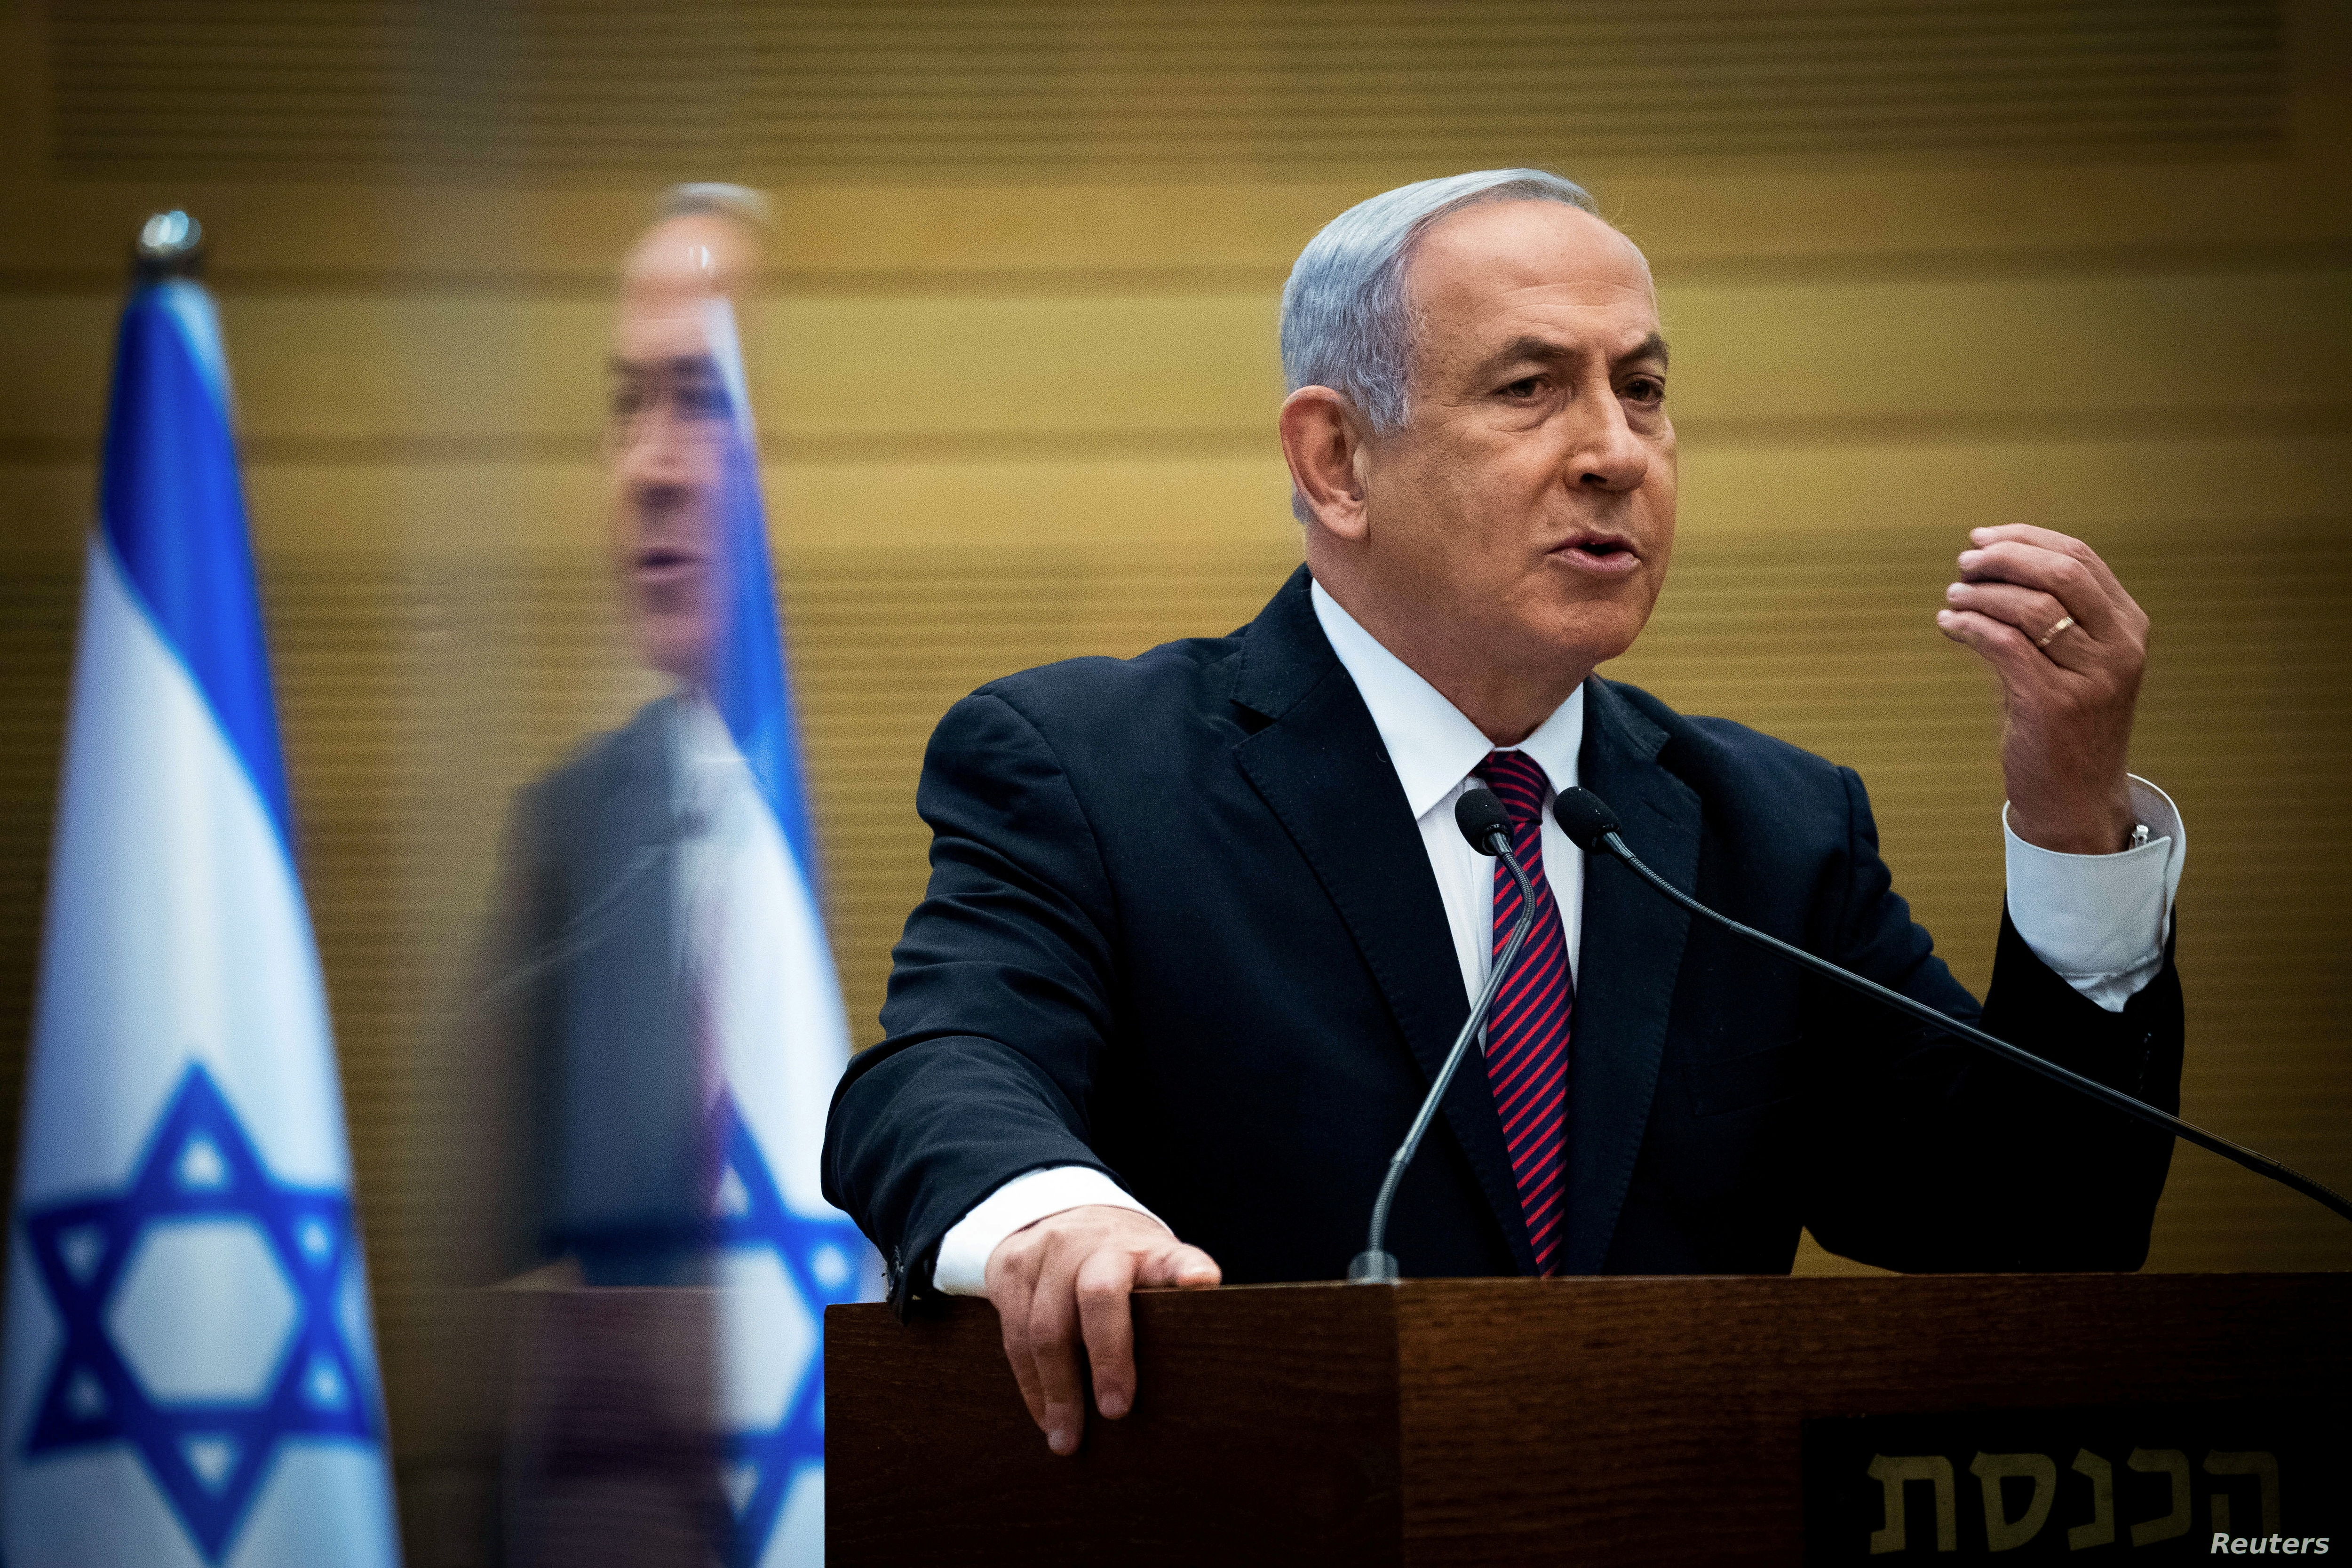 Why is Israel Going to the Polls Again amid Pandemic?